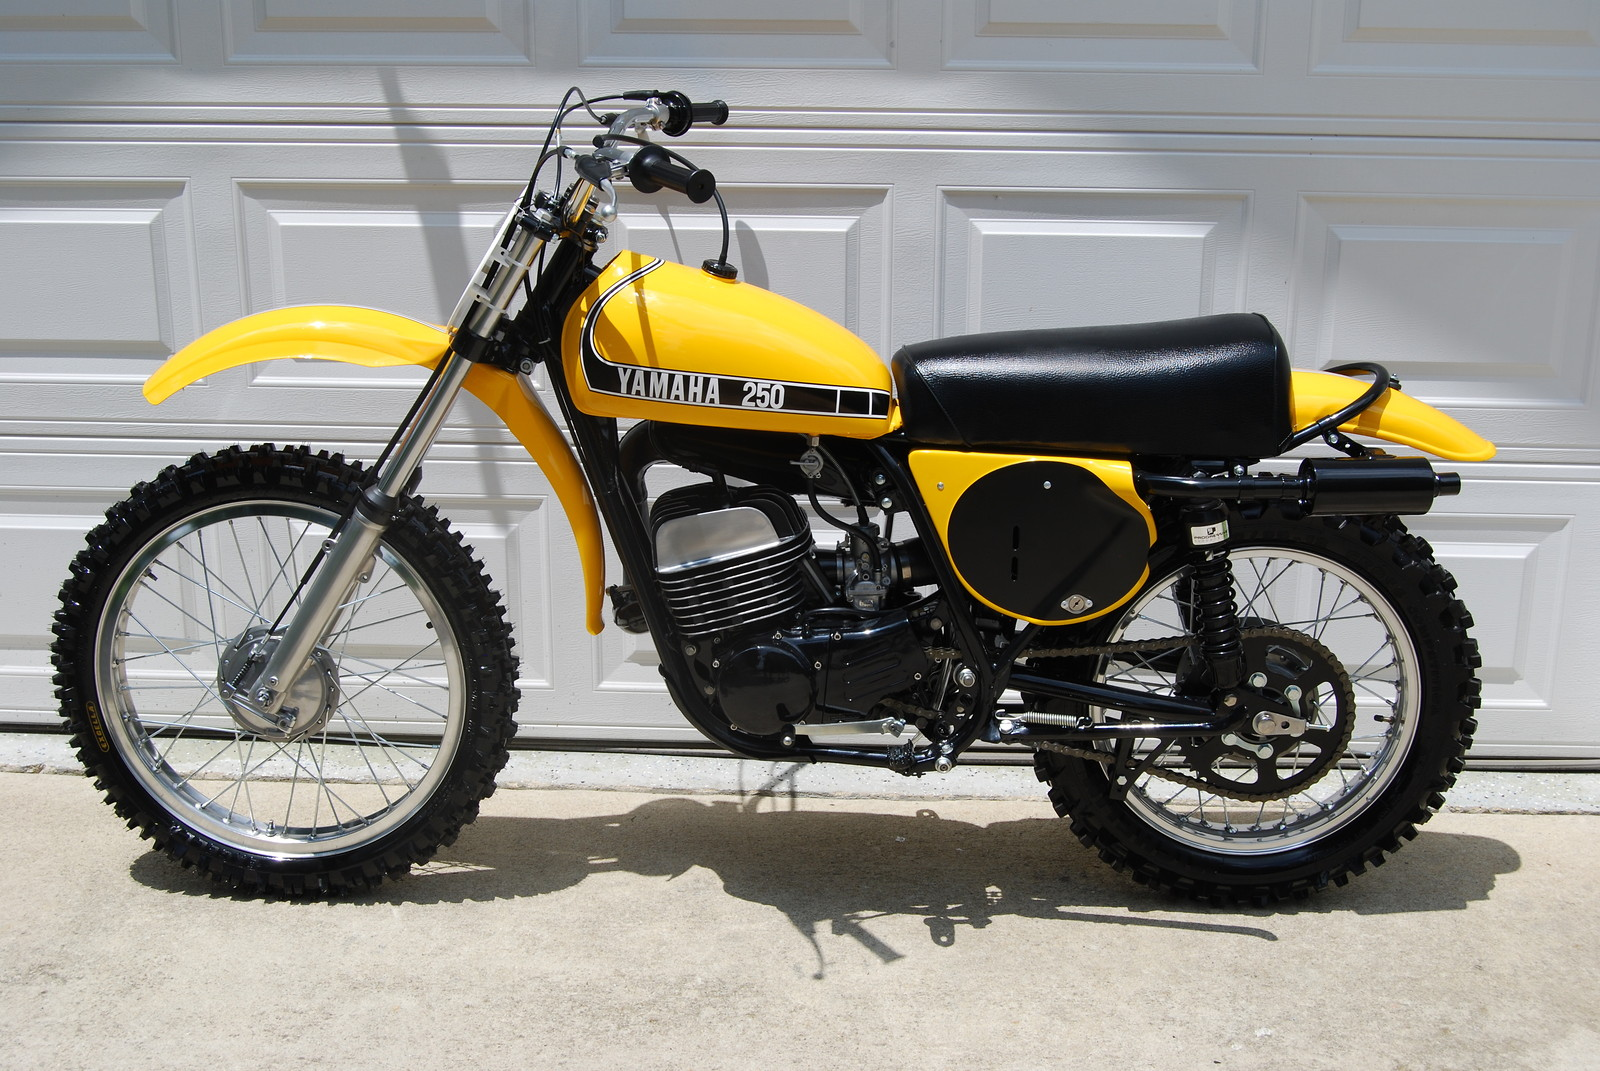 1974 yamaha mx 250 d vintage ray motocross pictures. Black Bedroom Furniture Sets. Home Design Ideas